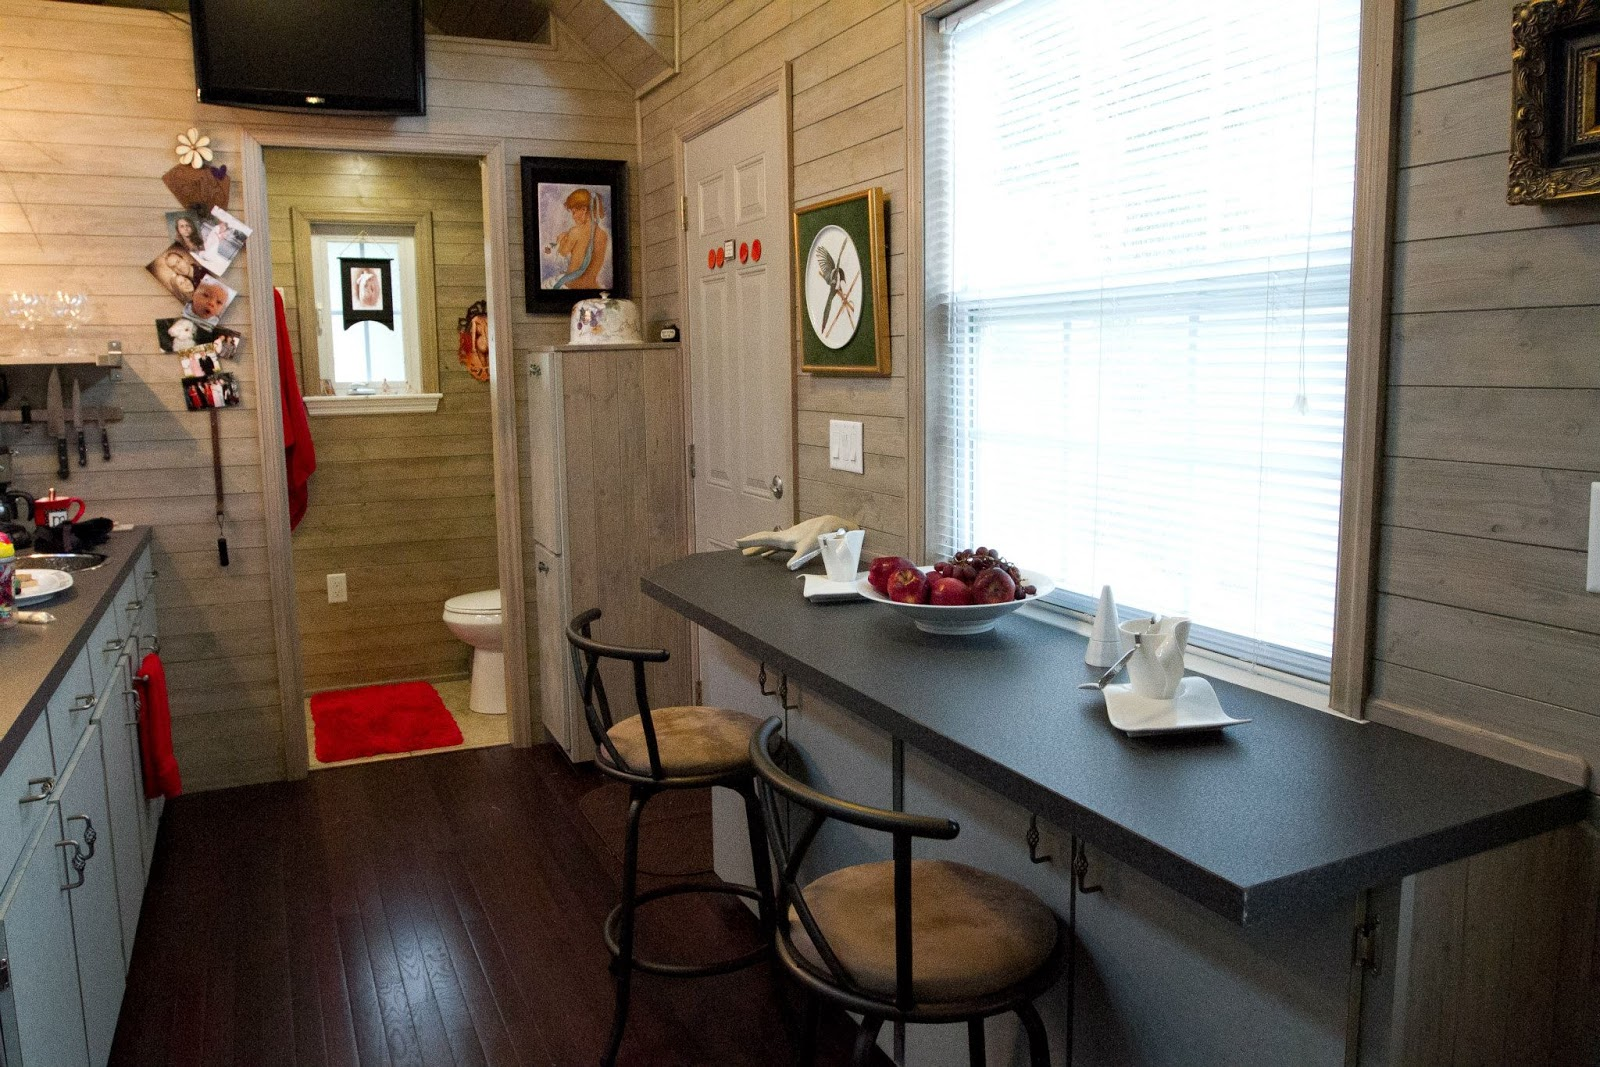 TINY HOUSE TOWN: The Retirement Tiny House